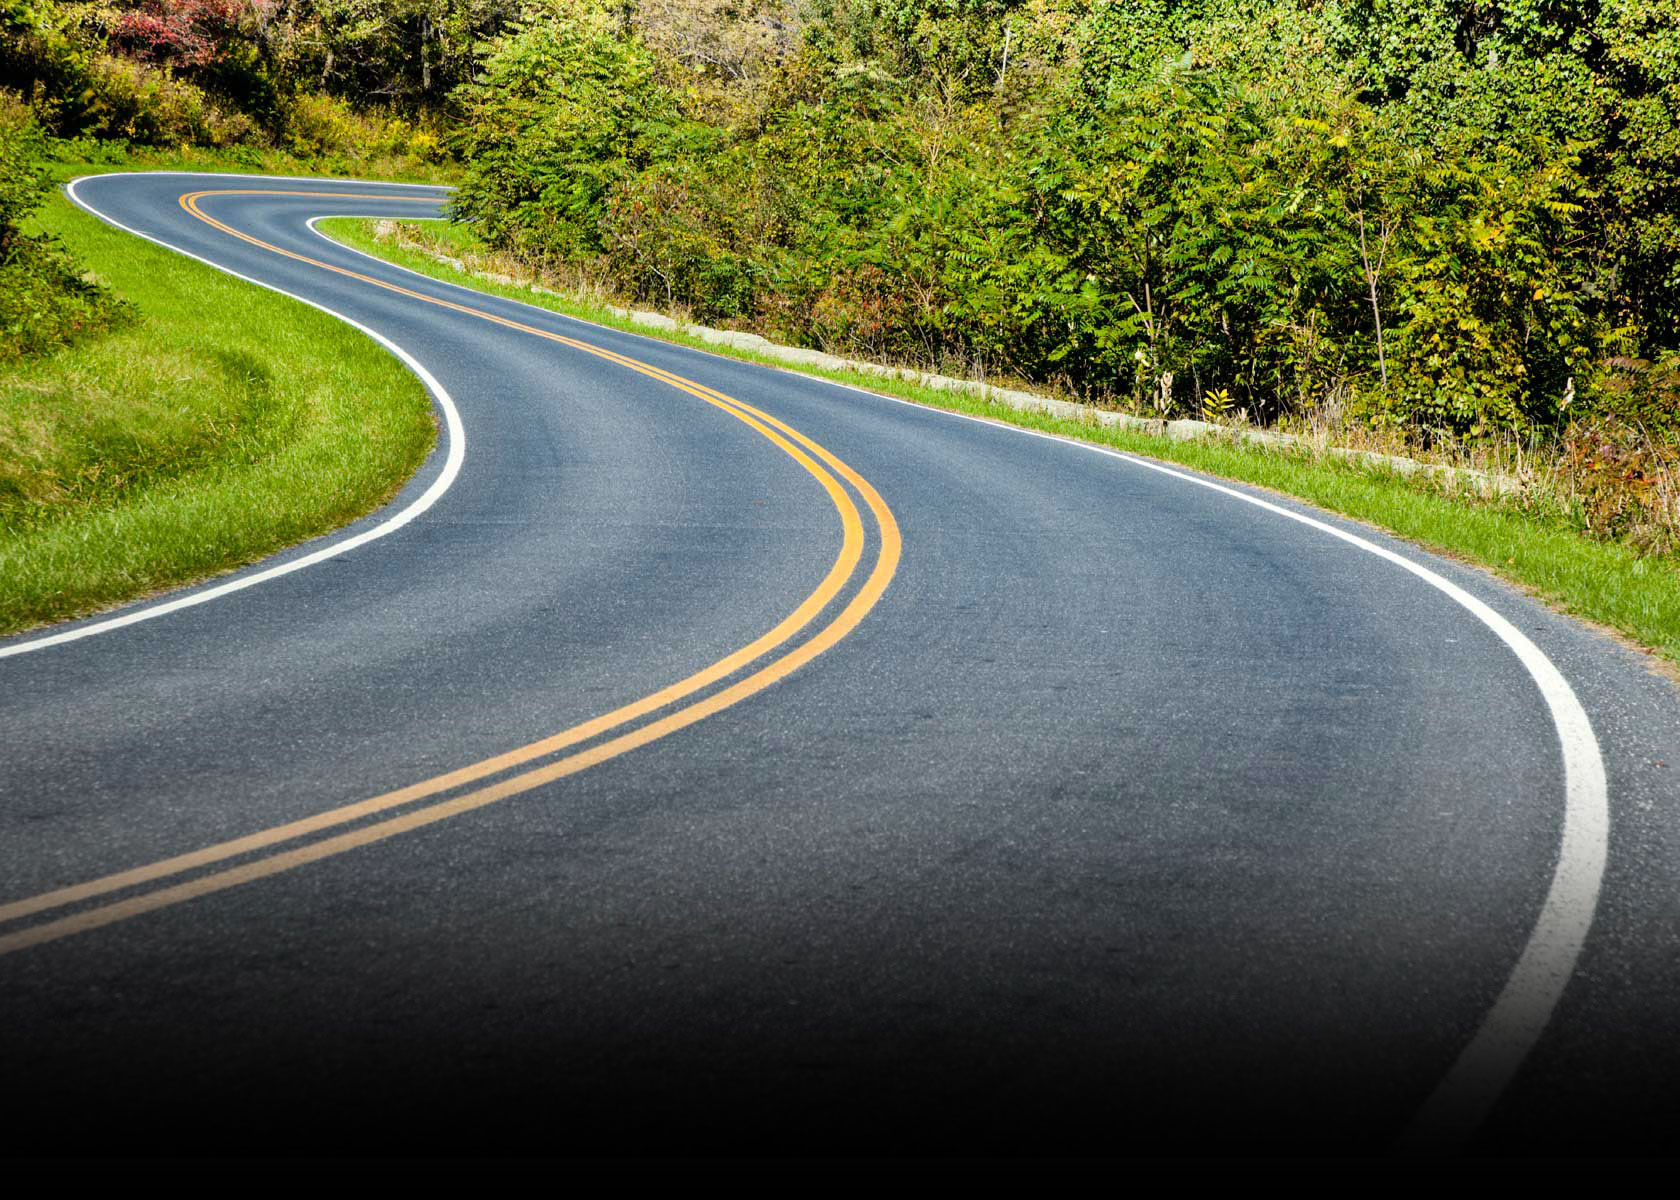 road background images - photo #17